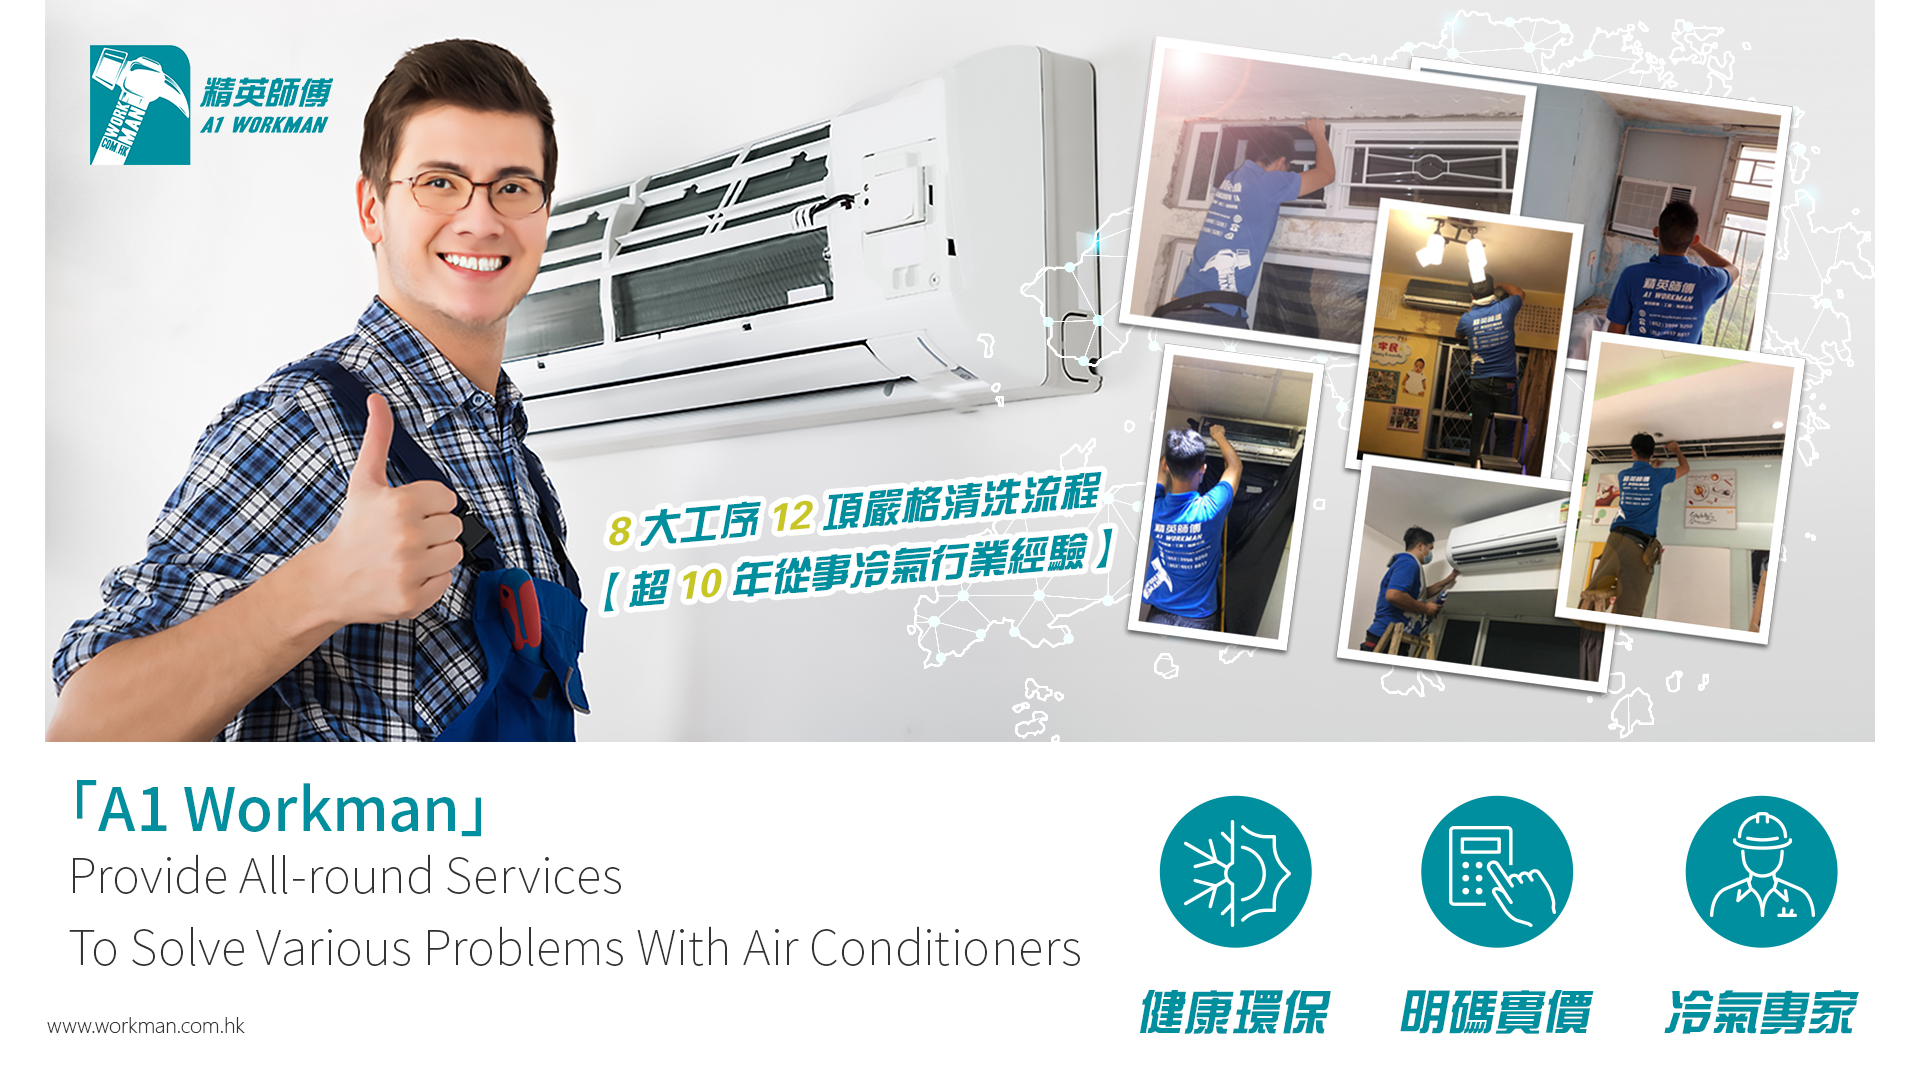 A1 Workman Provides All-around Services To Solve Various Problems With Air Conditioners